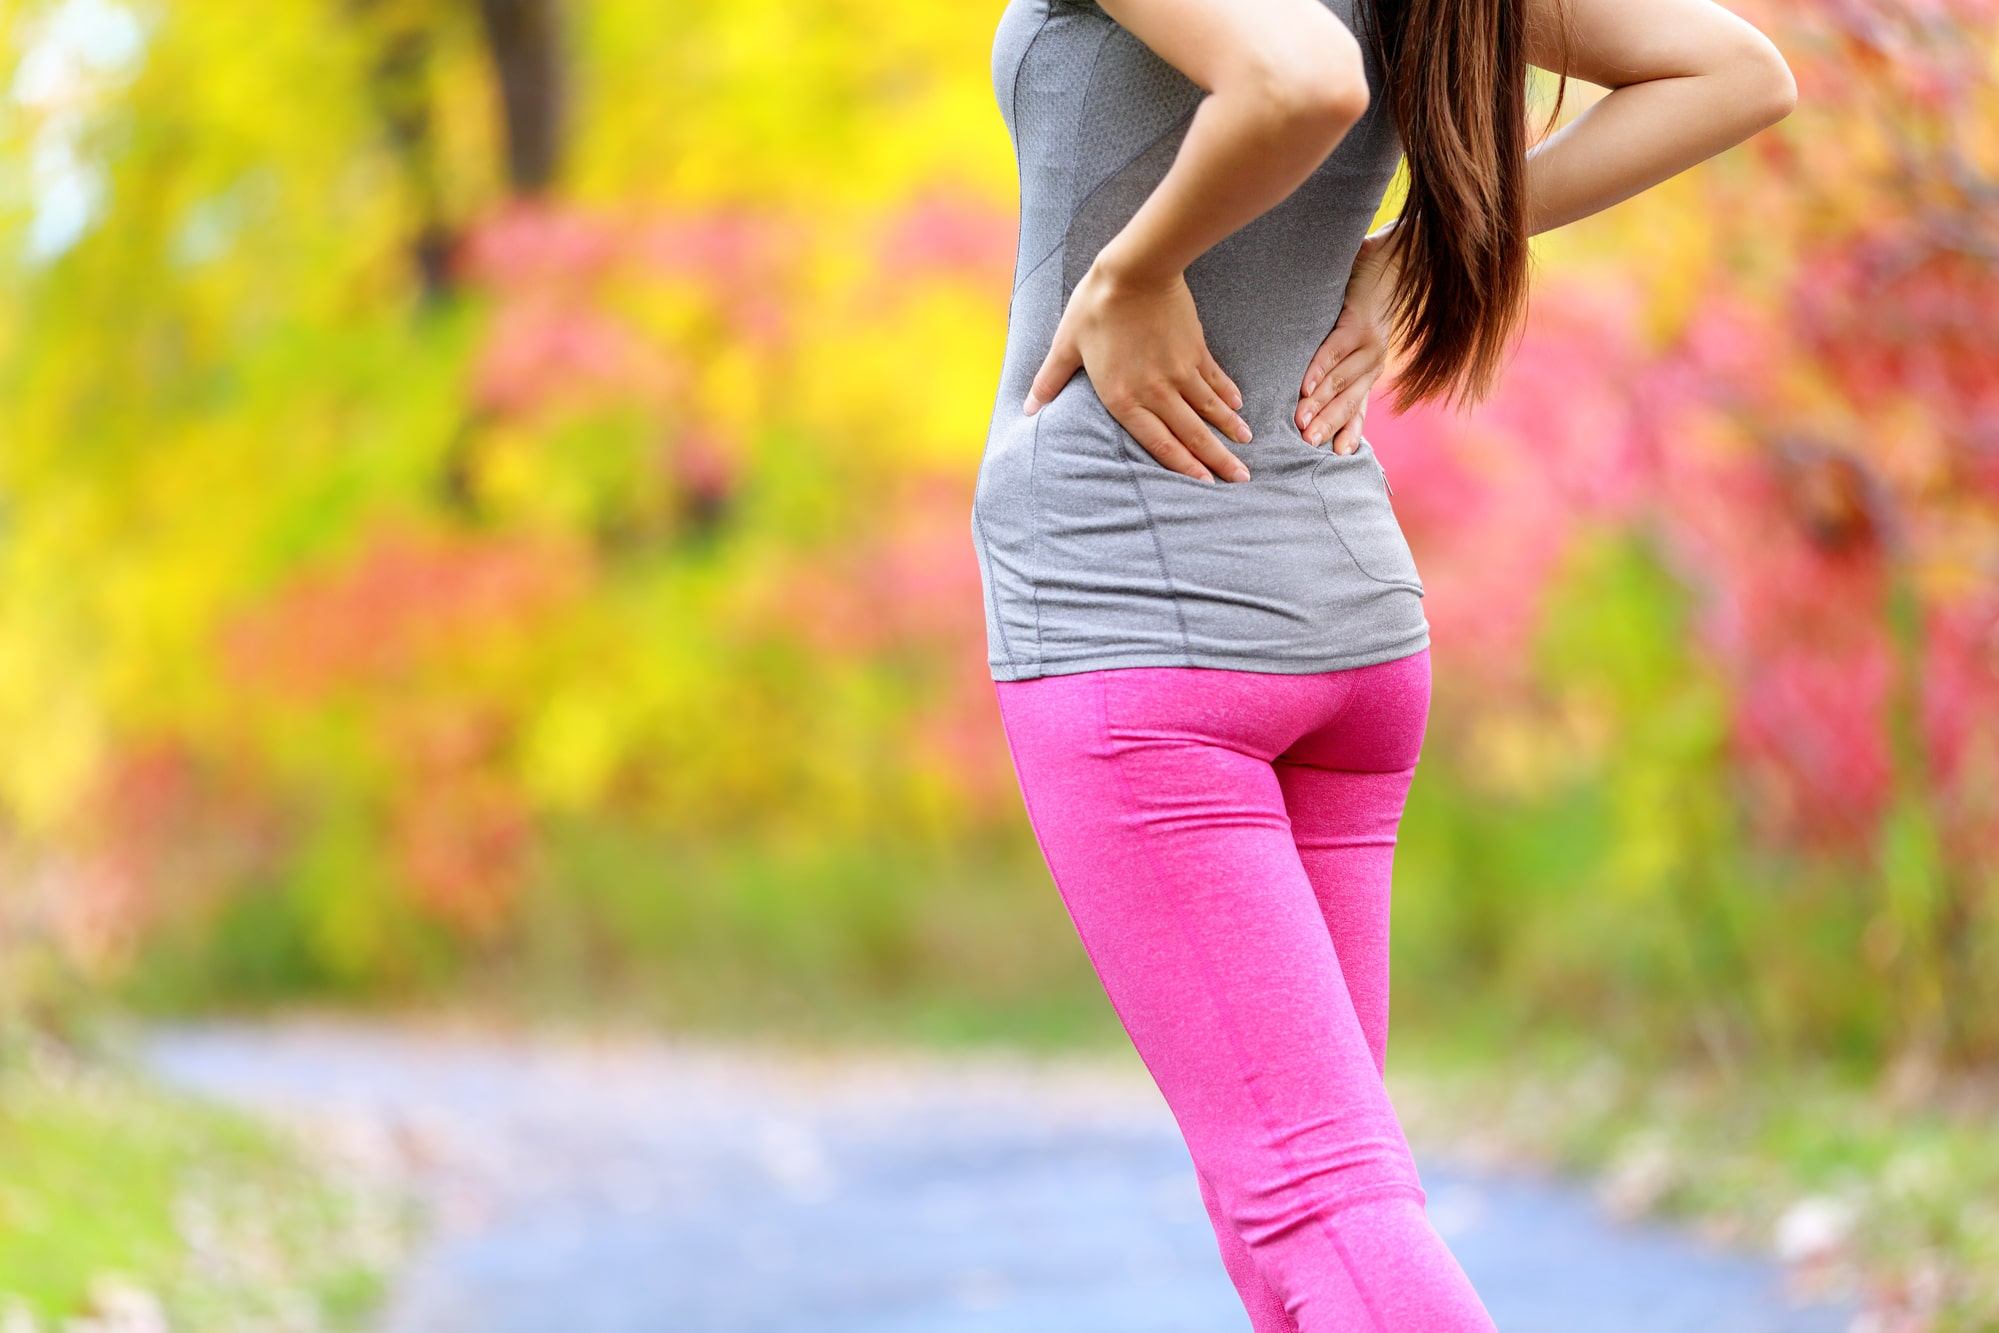 Lower Back pain. Running woman with back injury in sportswear rubbing touching lower back muscles standing on road outside in forest in fall.